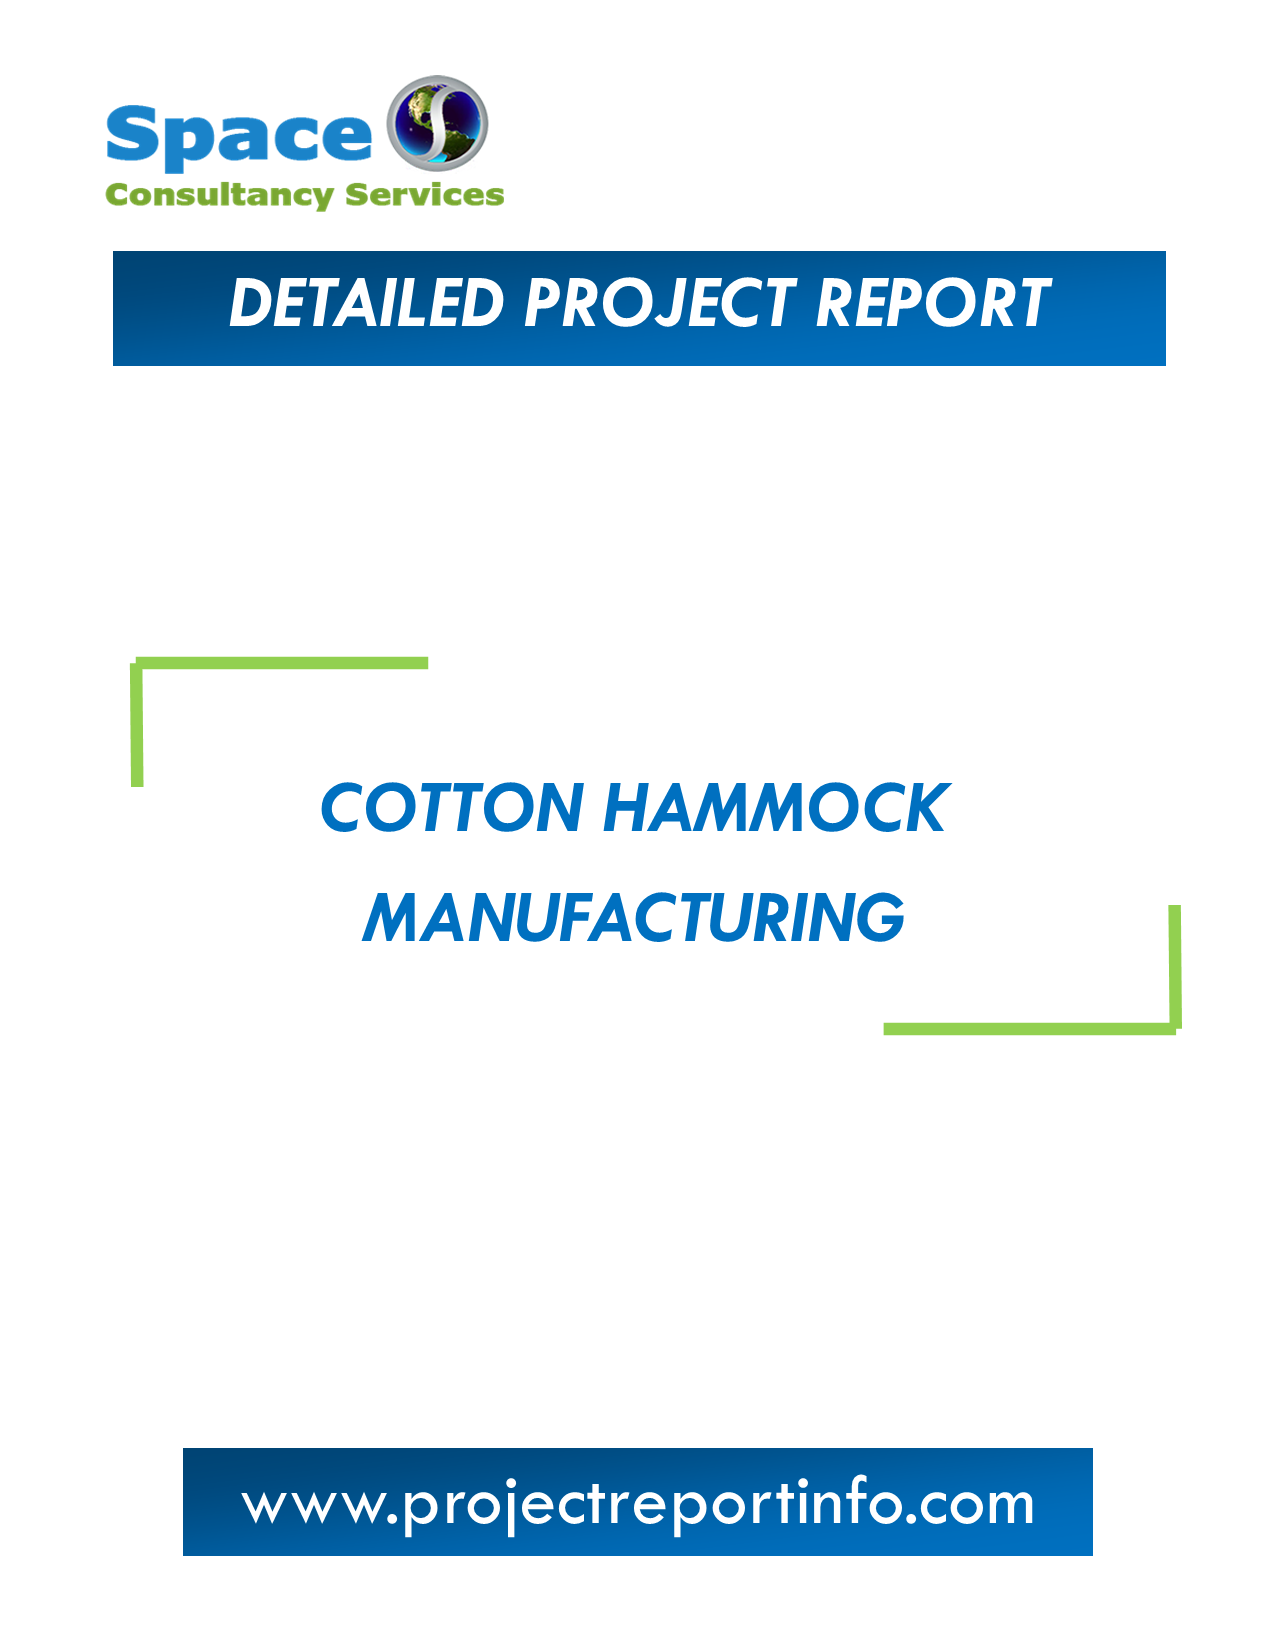 Project Report on Cotton Hammock Manufacturing